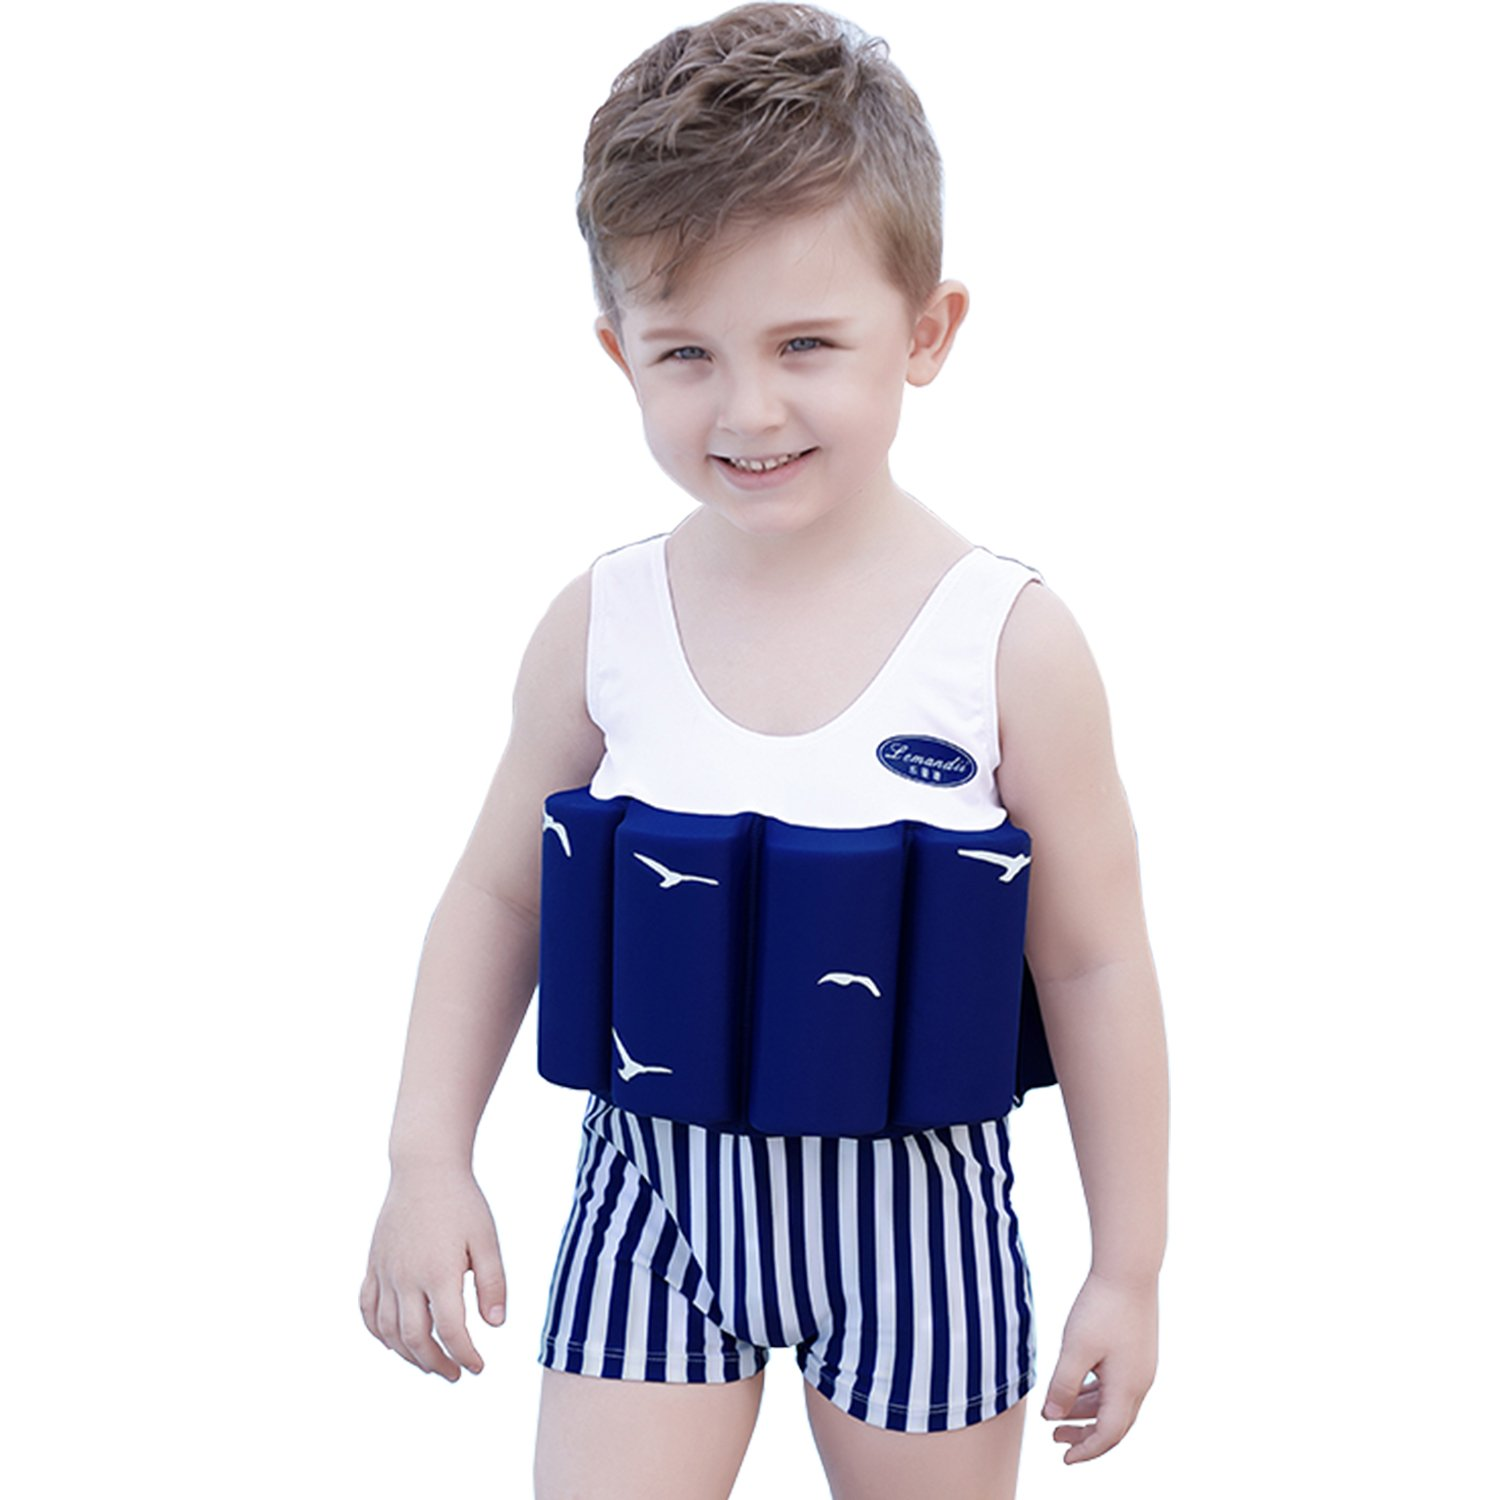 bluee 110 ONMet Baby Kids Floatation Suit With Detachable Float Adjustable One-Piece Swimwear Buoyancy for Girls Boys Age 4-10 Year Toddler Swim Trainer(Swimming Cap Included)